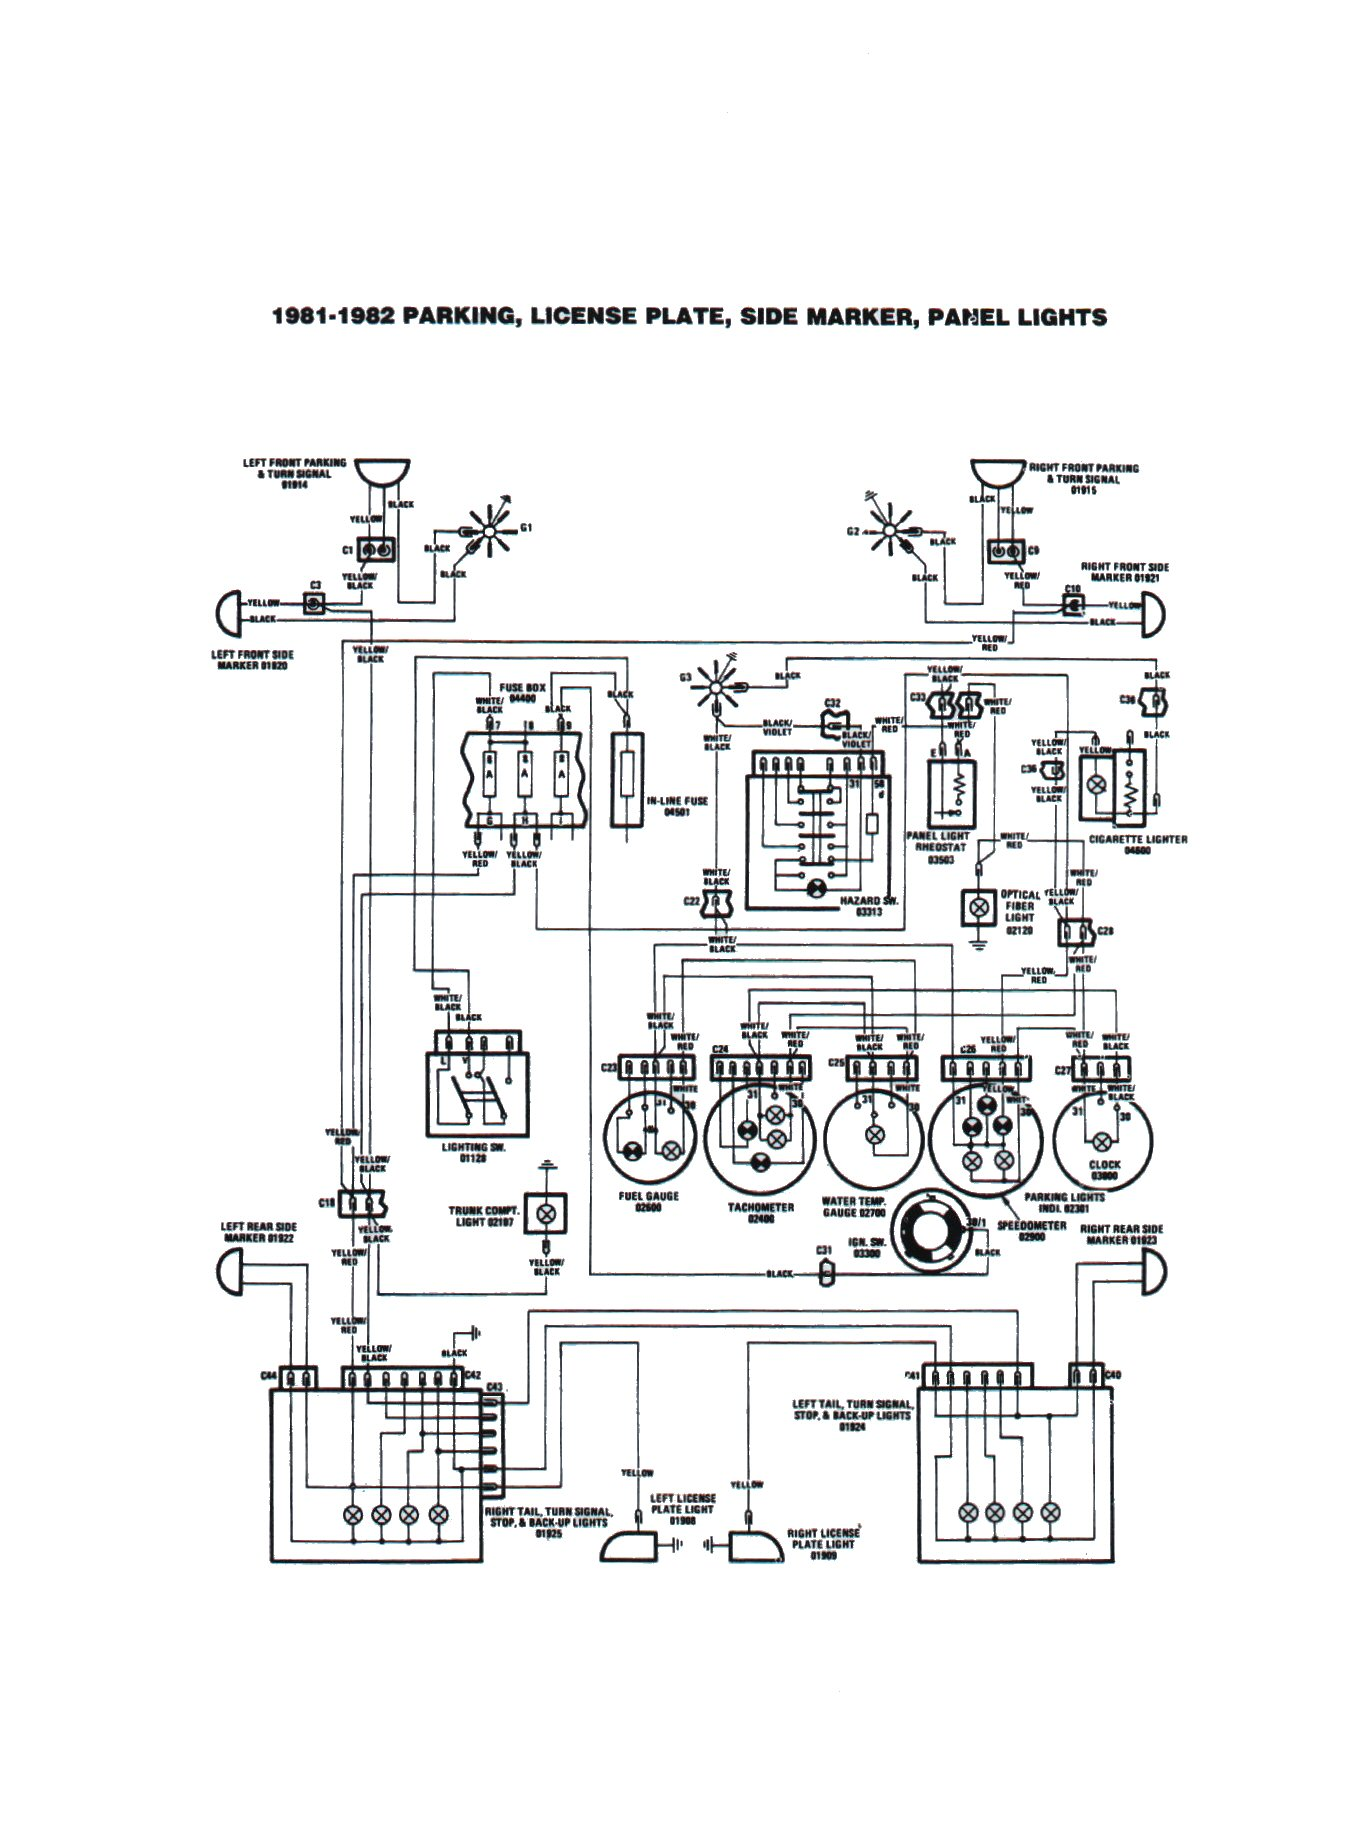 hight resolution of fiat 124 spider 1977 fuse box diagram 37 wiring diagram fiat 500 engine diagram fiat 500